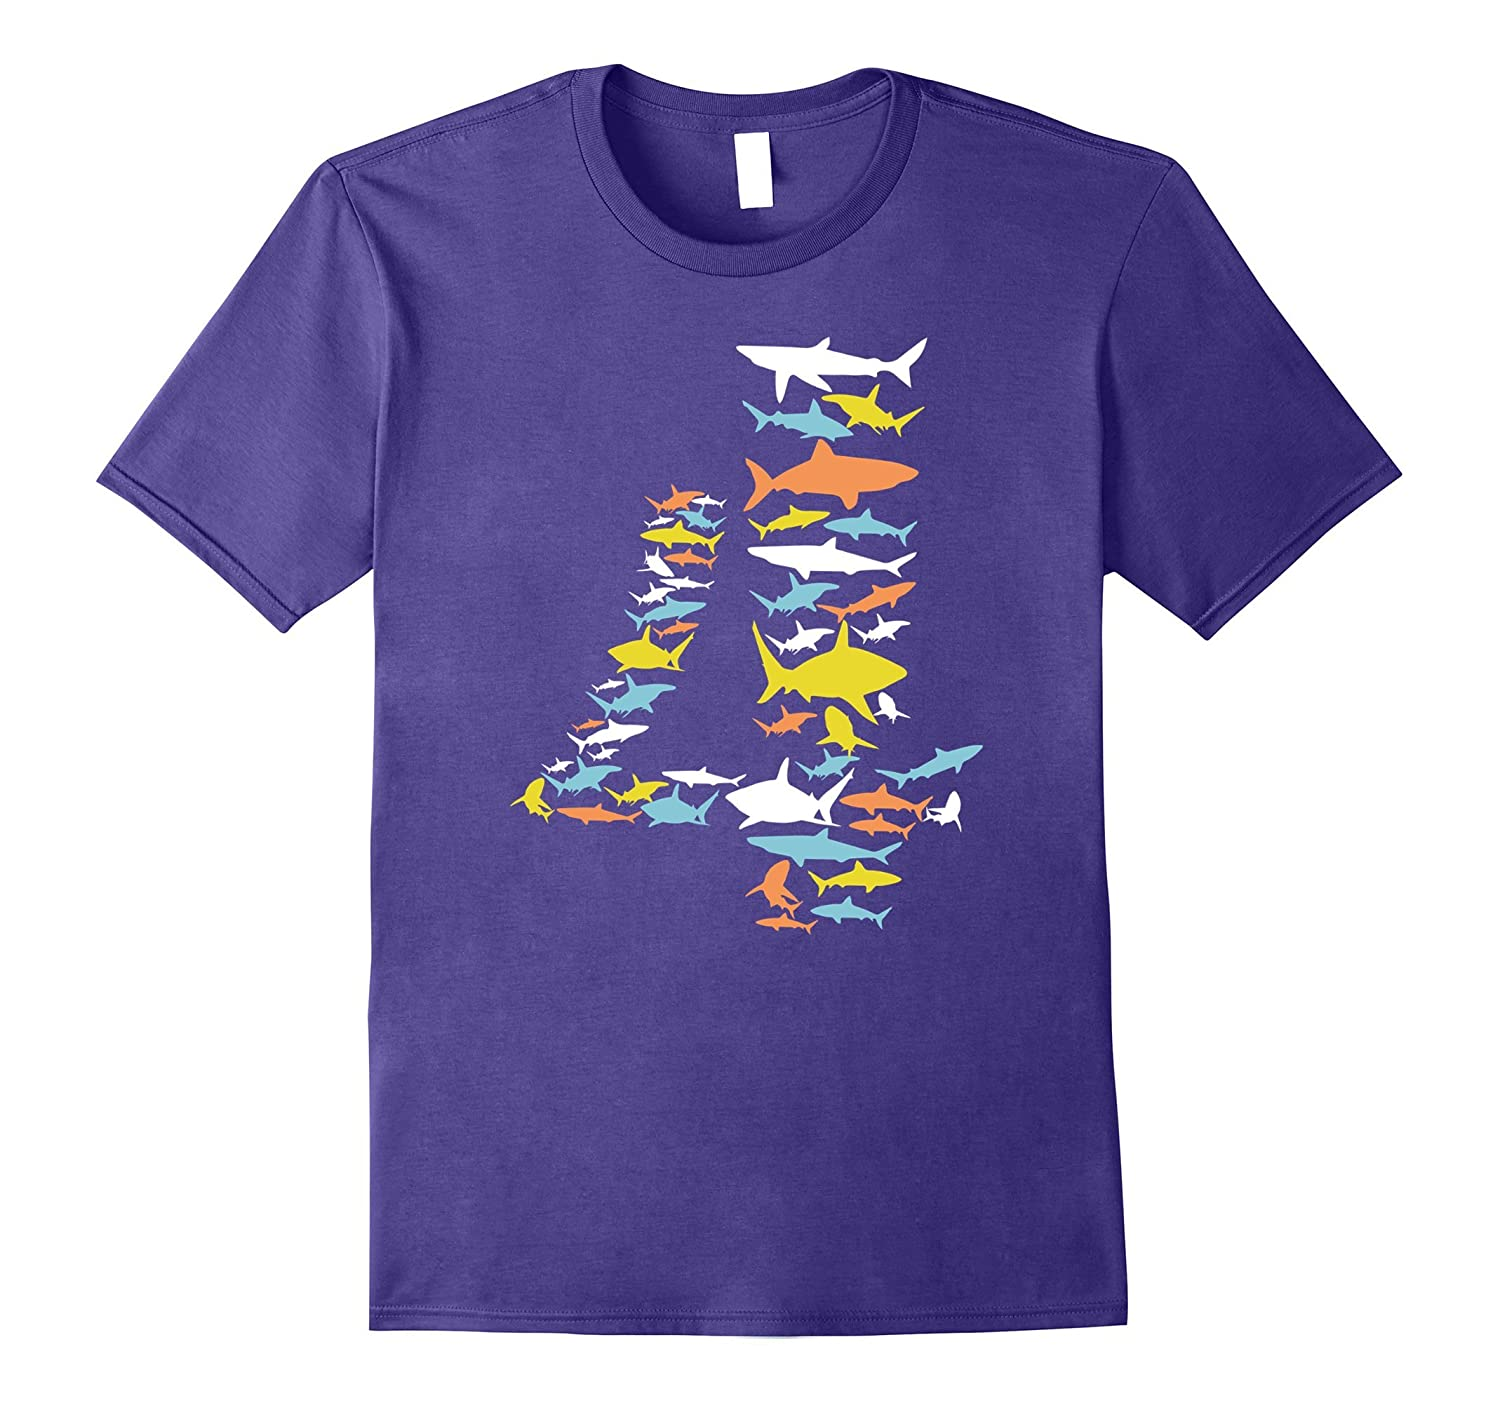 4th Birthday Shirt Types Of Sharks For 4 Year Old TJ Theteejob